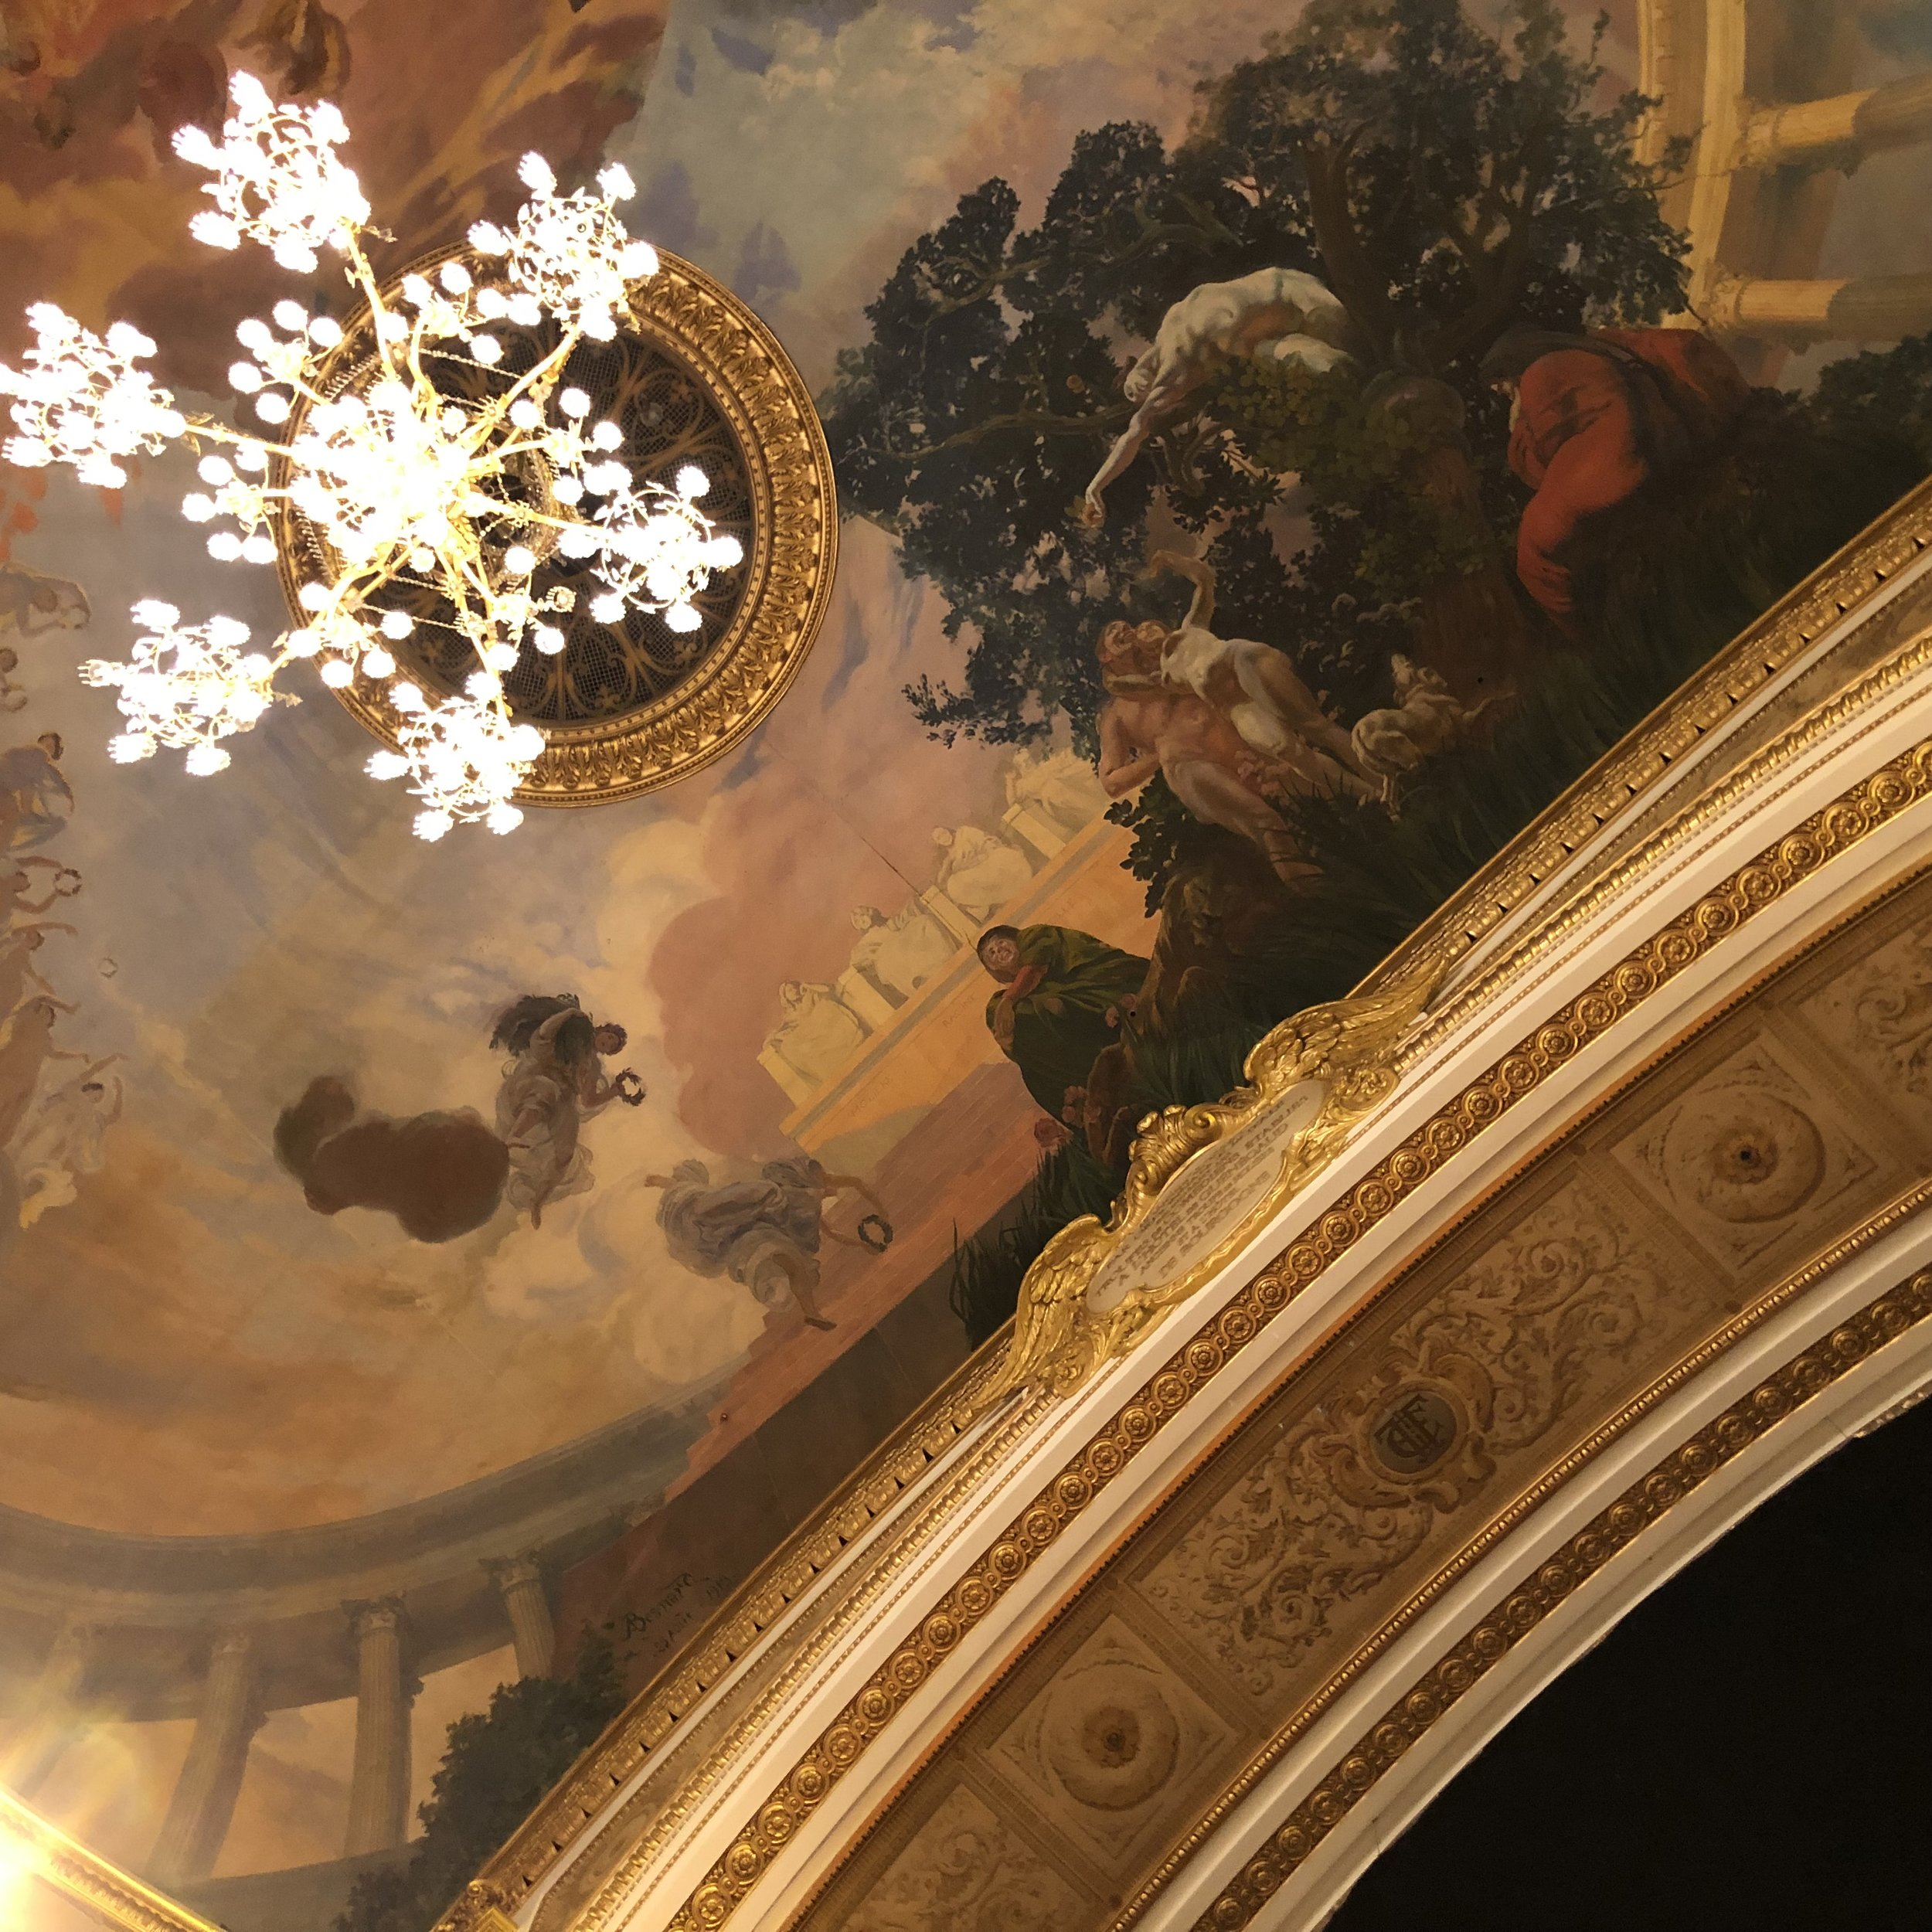 The elaborate ceiling and detail of the proscenium arch of the Salle Richelieu